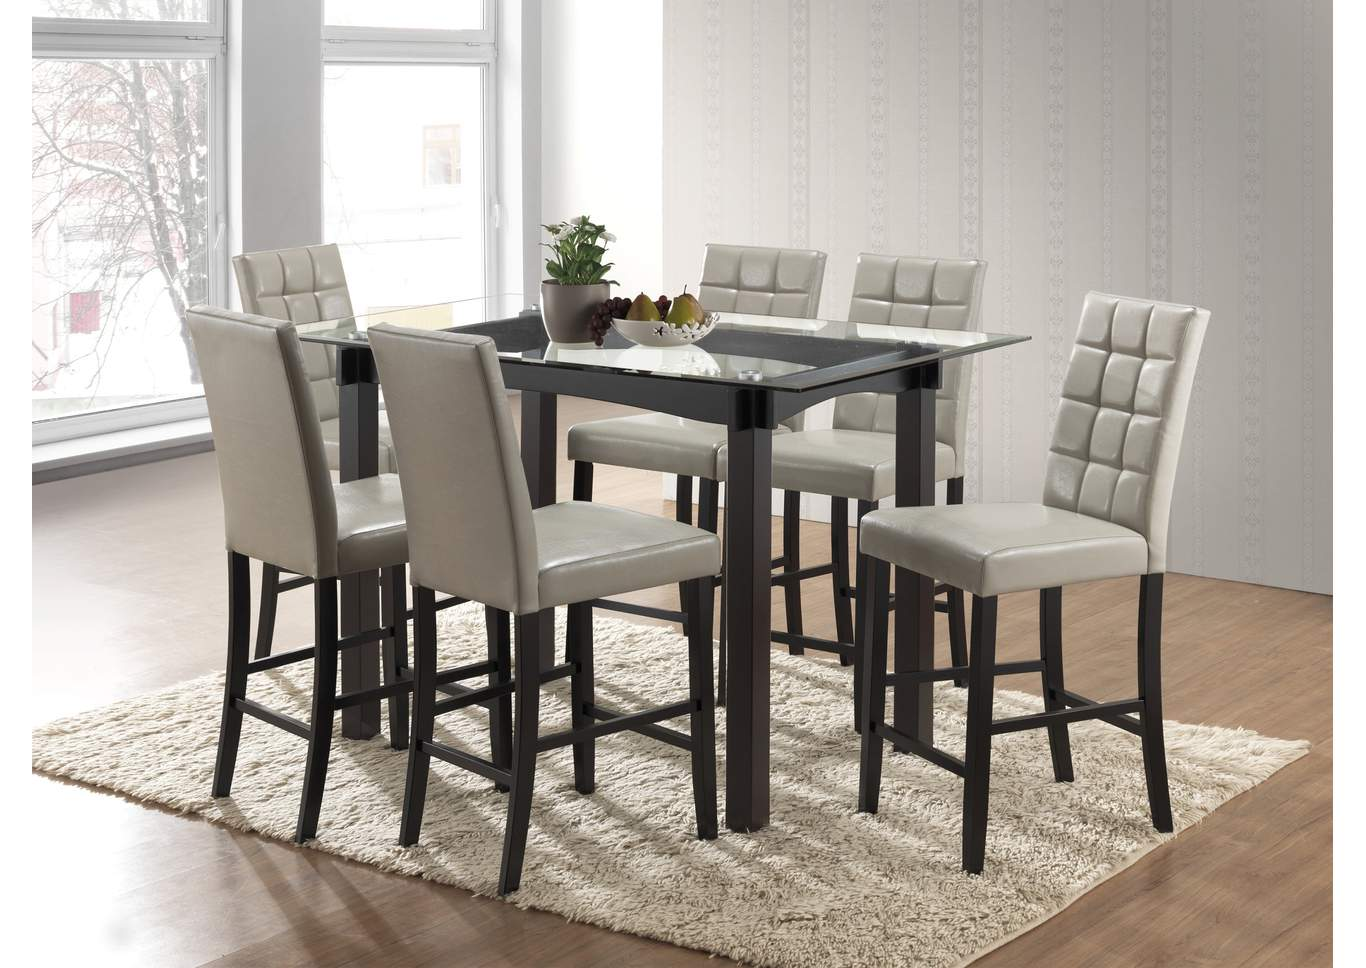 Zora Glass Top Counter Height Dining Table W/6 Counter Height Chairs,Crown  Mark